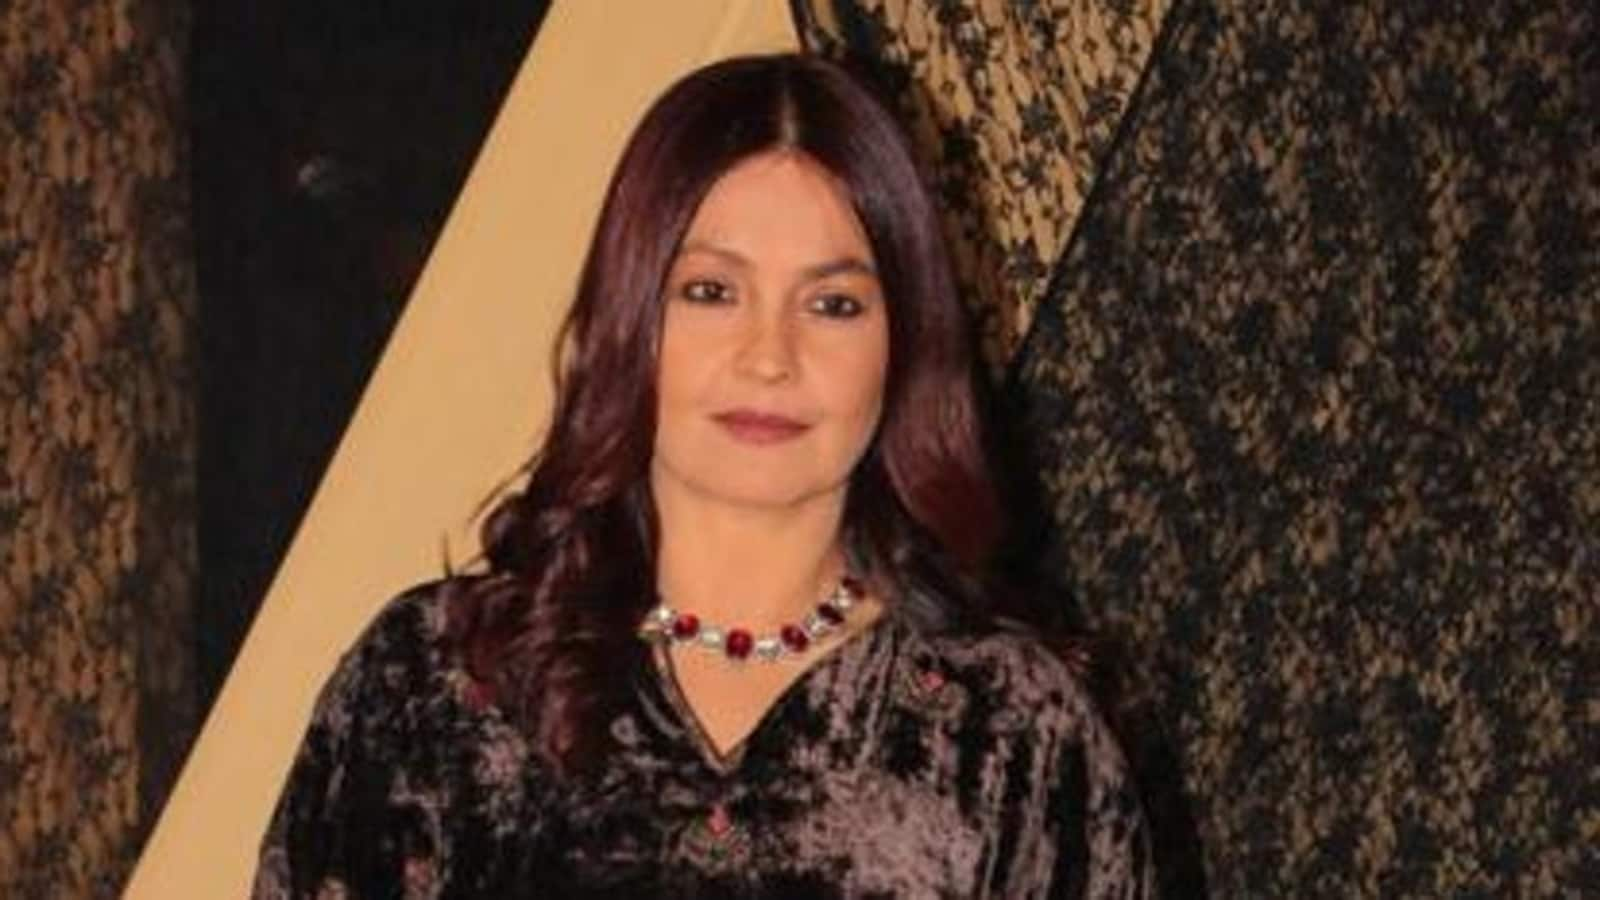 Pooja Bhatt on directing Jism's intimate scenes: 'Told Bipasha Basu you decide how far you want to go' - Hindustan Times